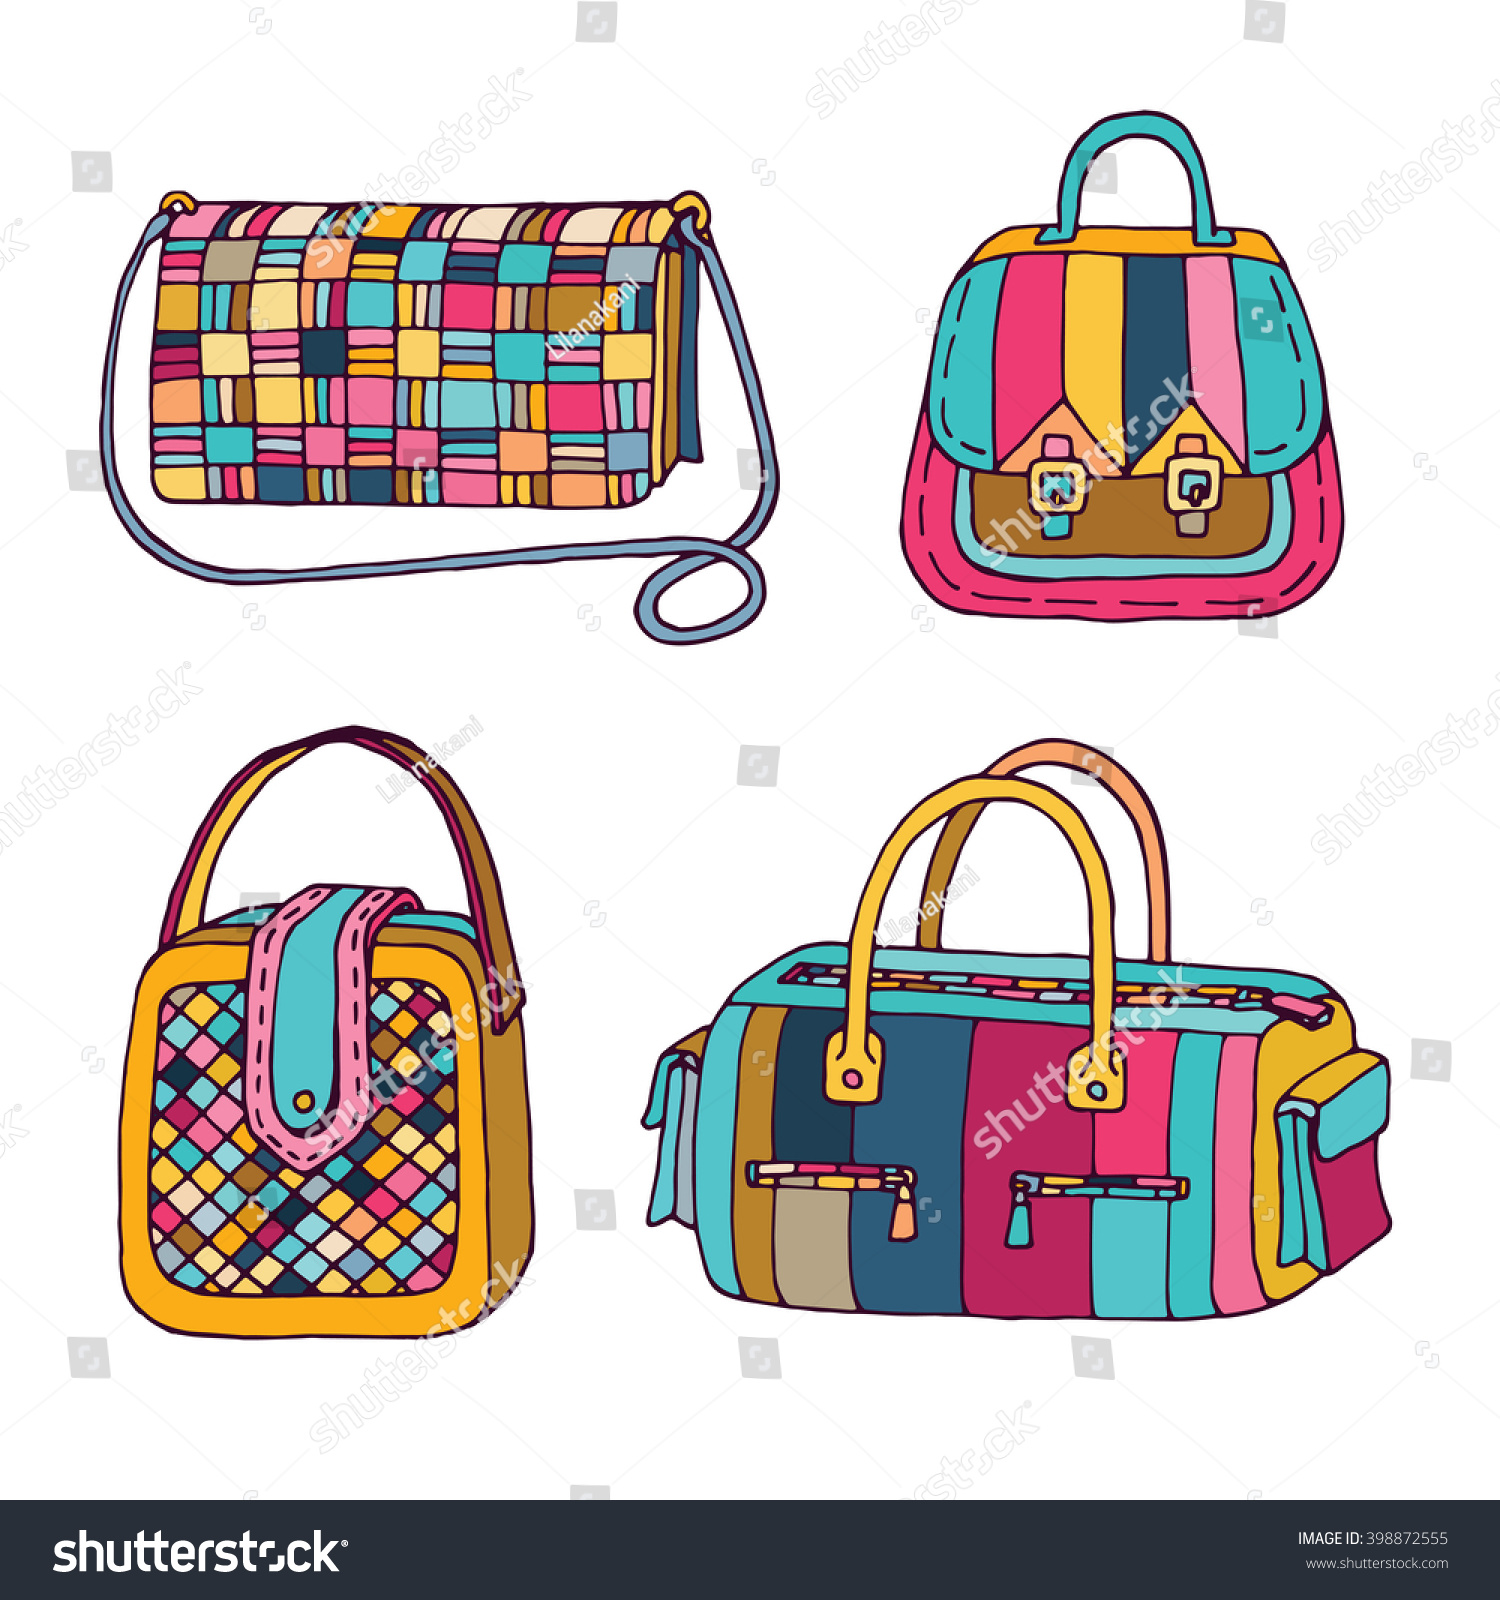 Woman handbags set. Fashion bags collection. Female bag doodle hand drawn  vector illustration. 15e25bb1e0